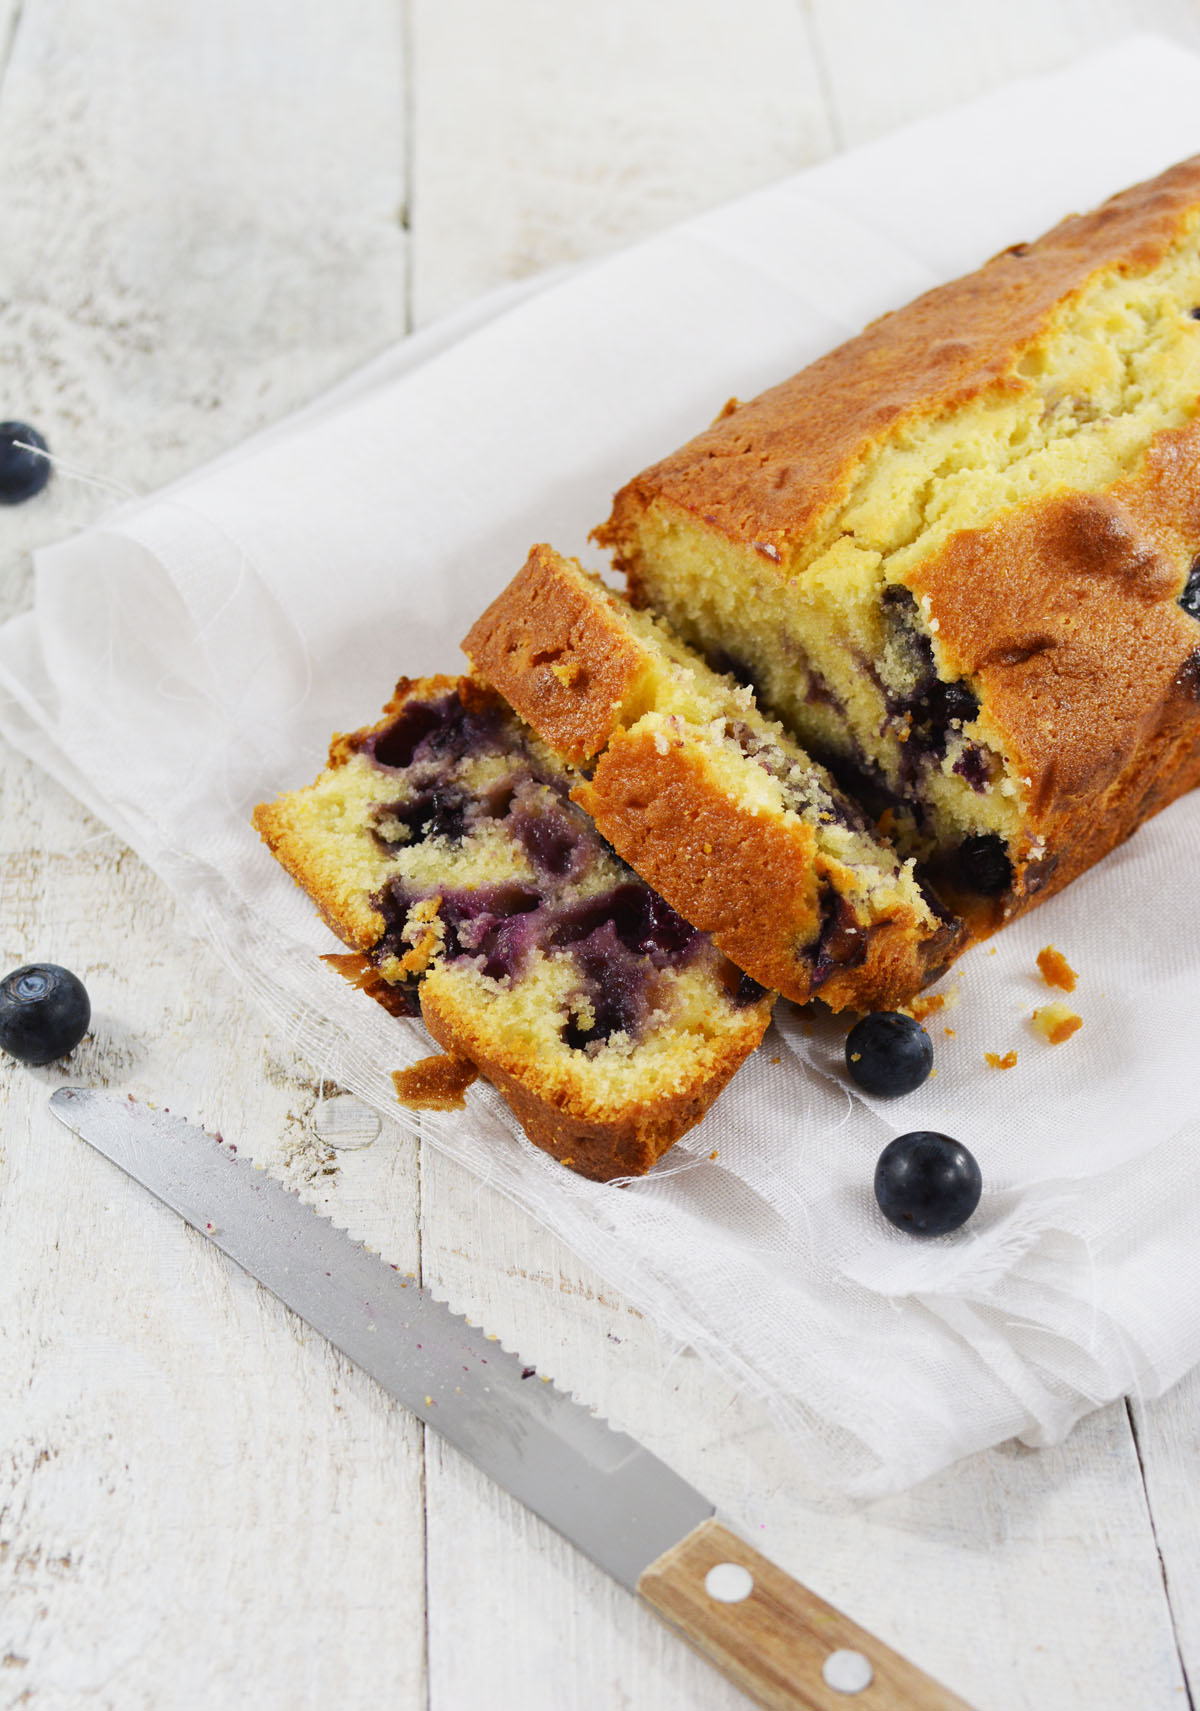 Blueberry yoghurt cake 10